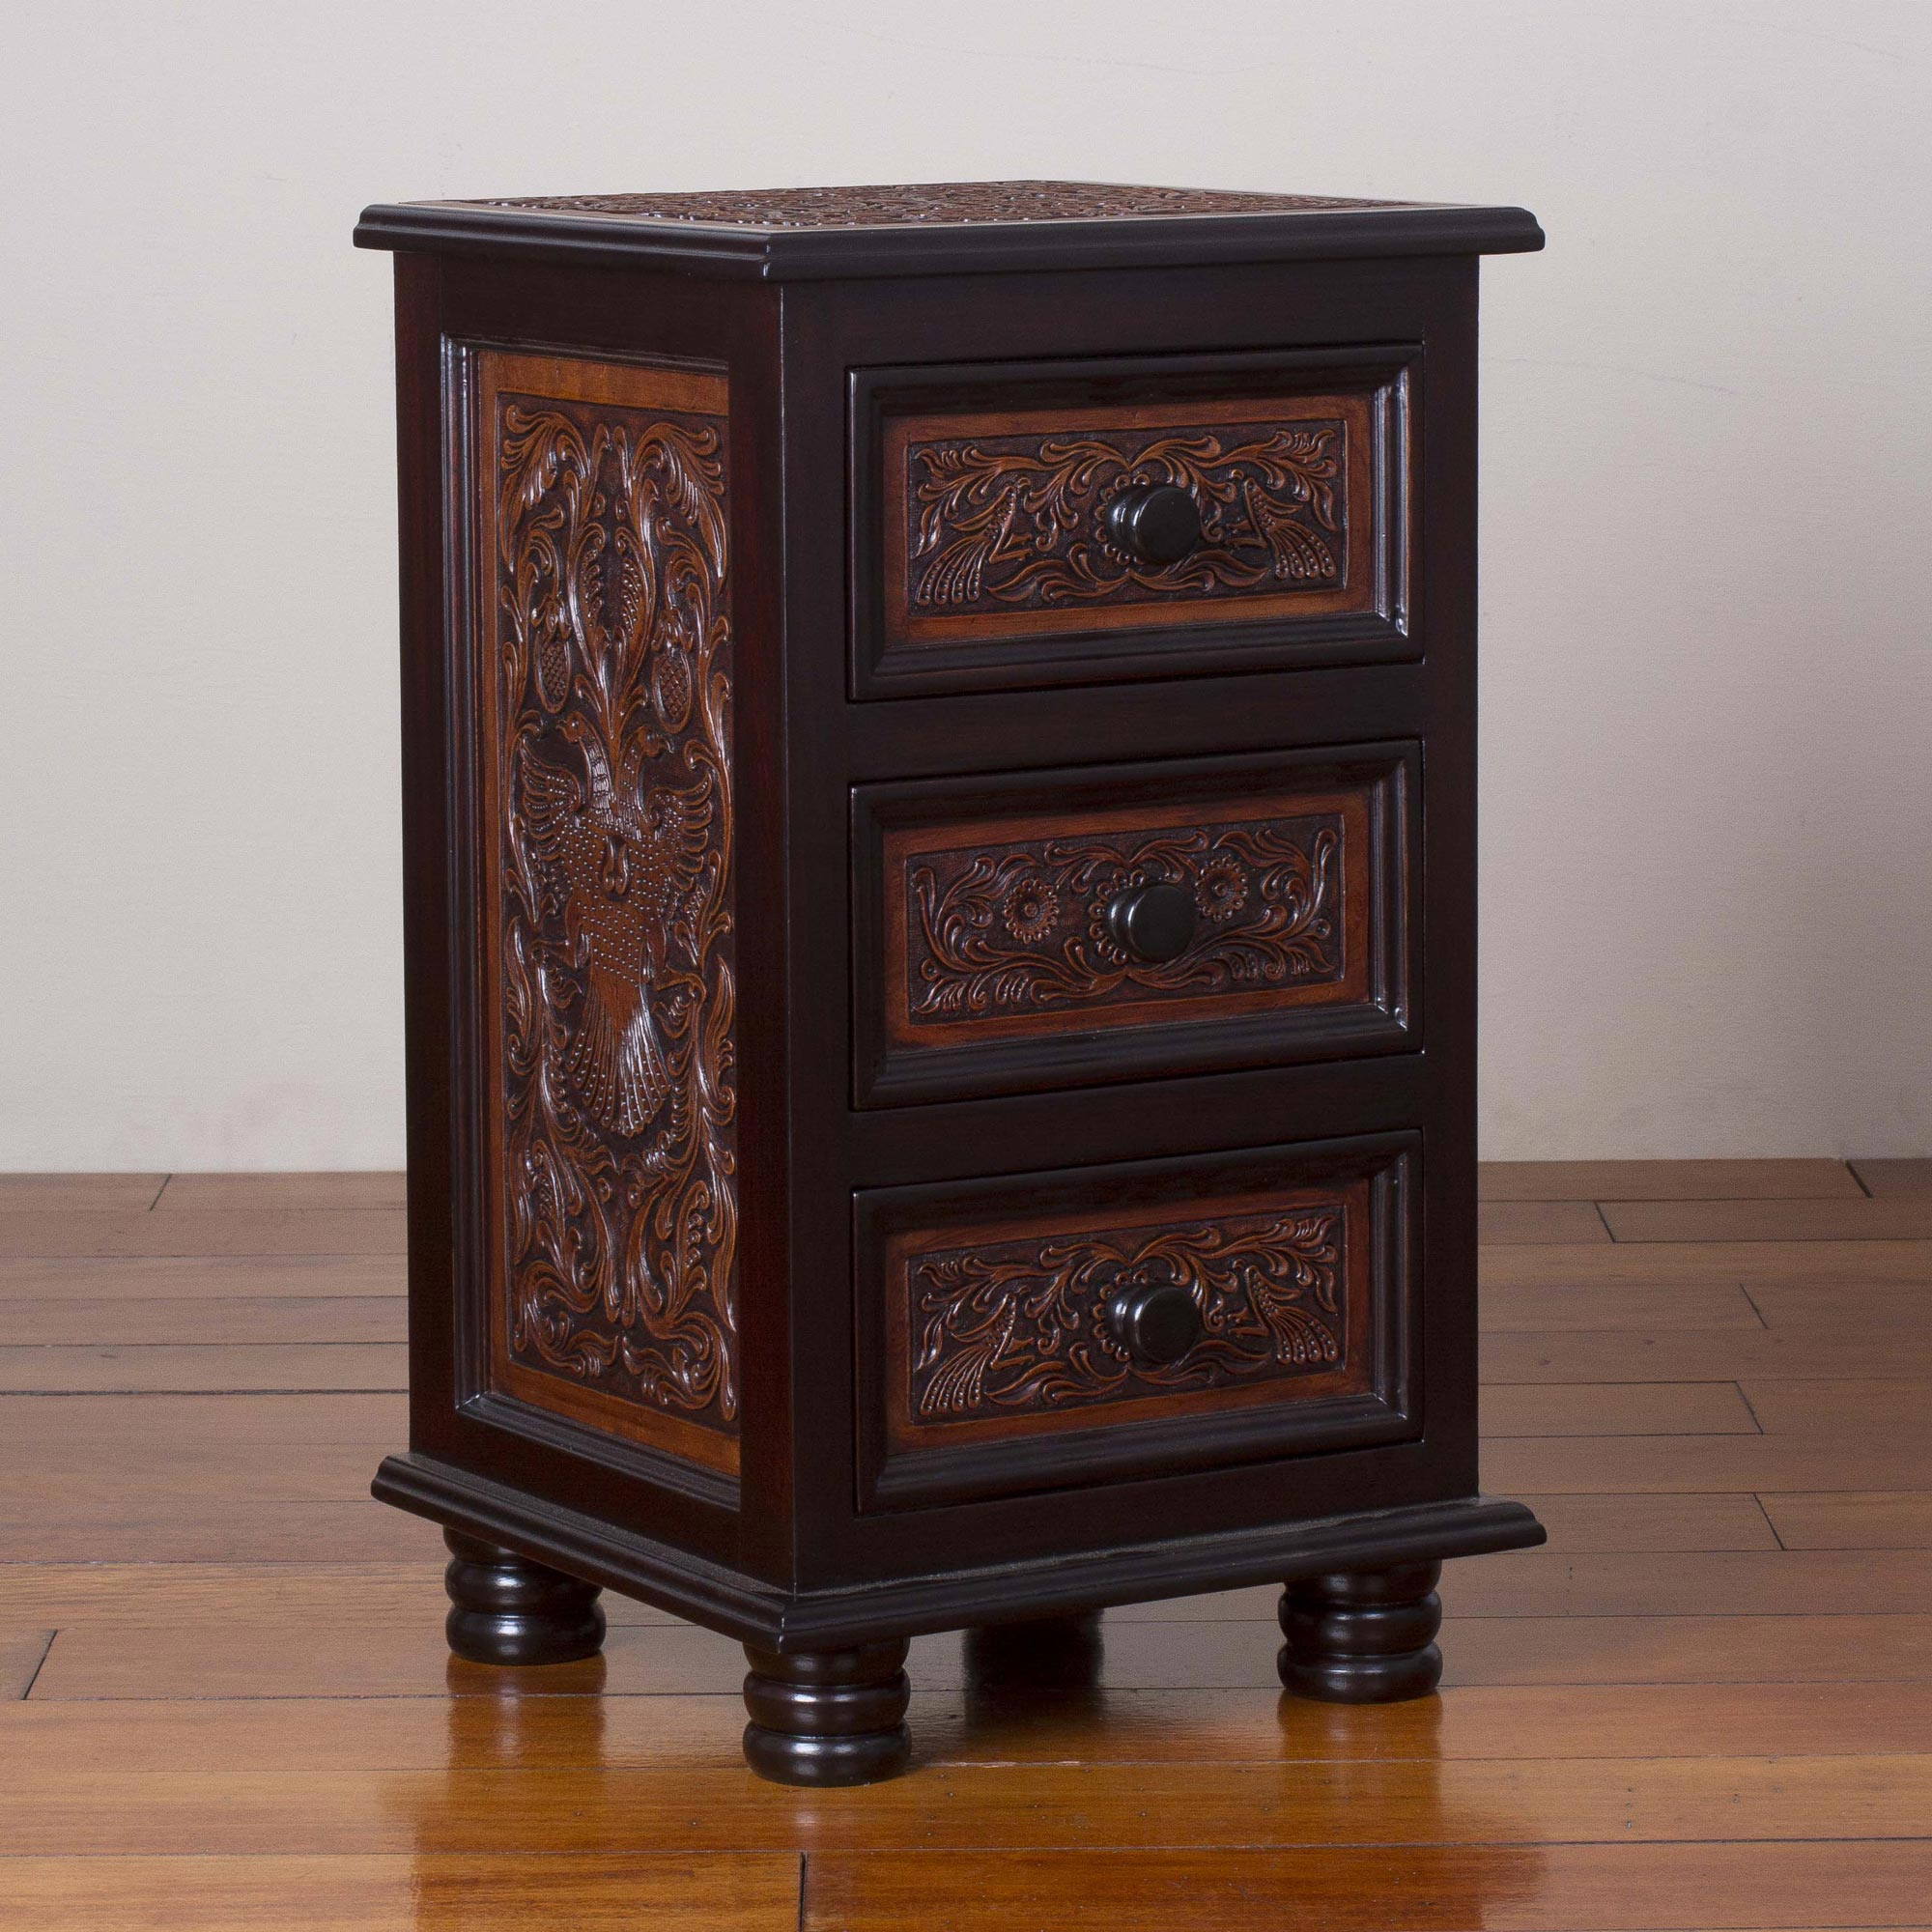 Avian Kingdom Leather and Wood Accent Table with Drawers from Peru animal themed